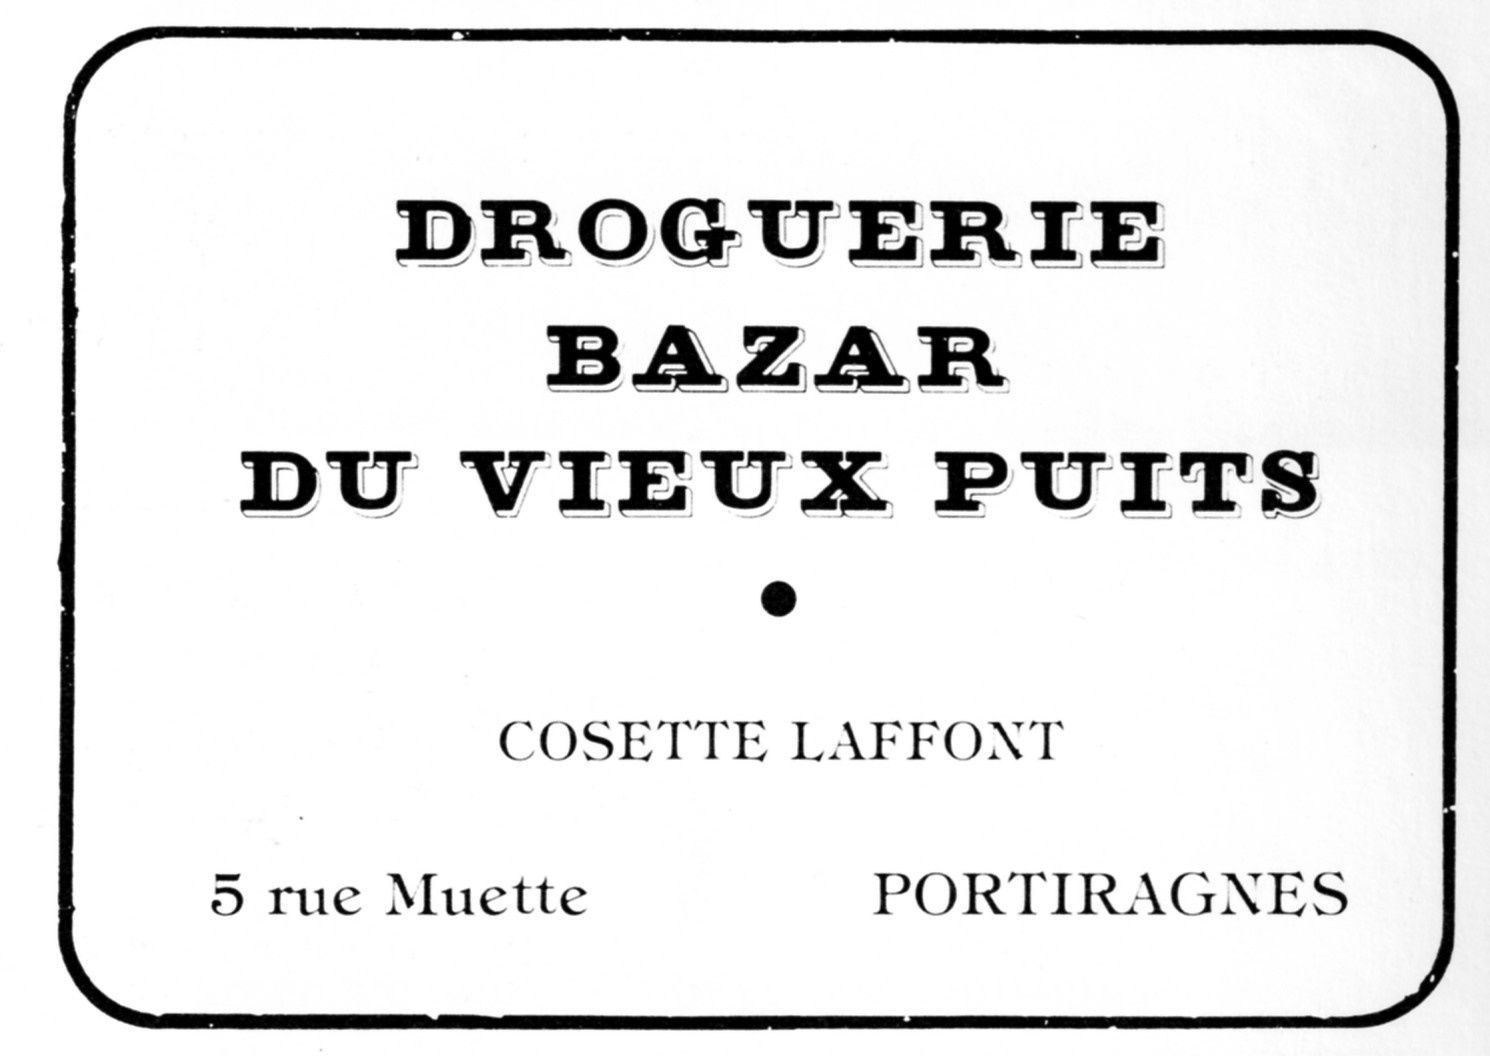 Source bulletin municipal (1978)